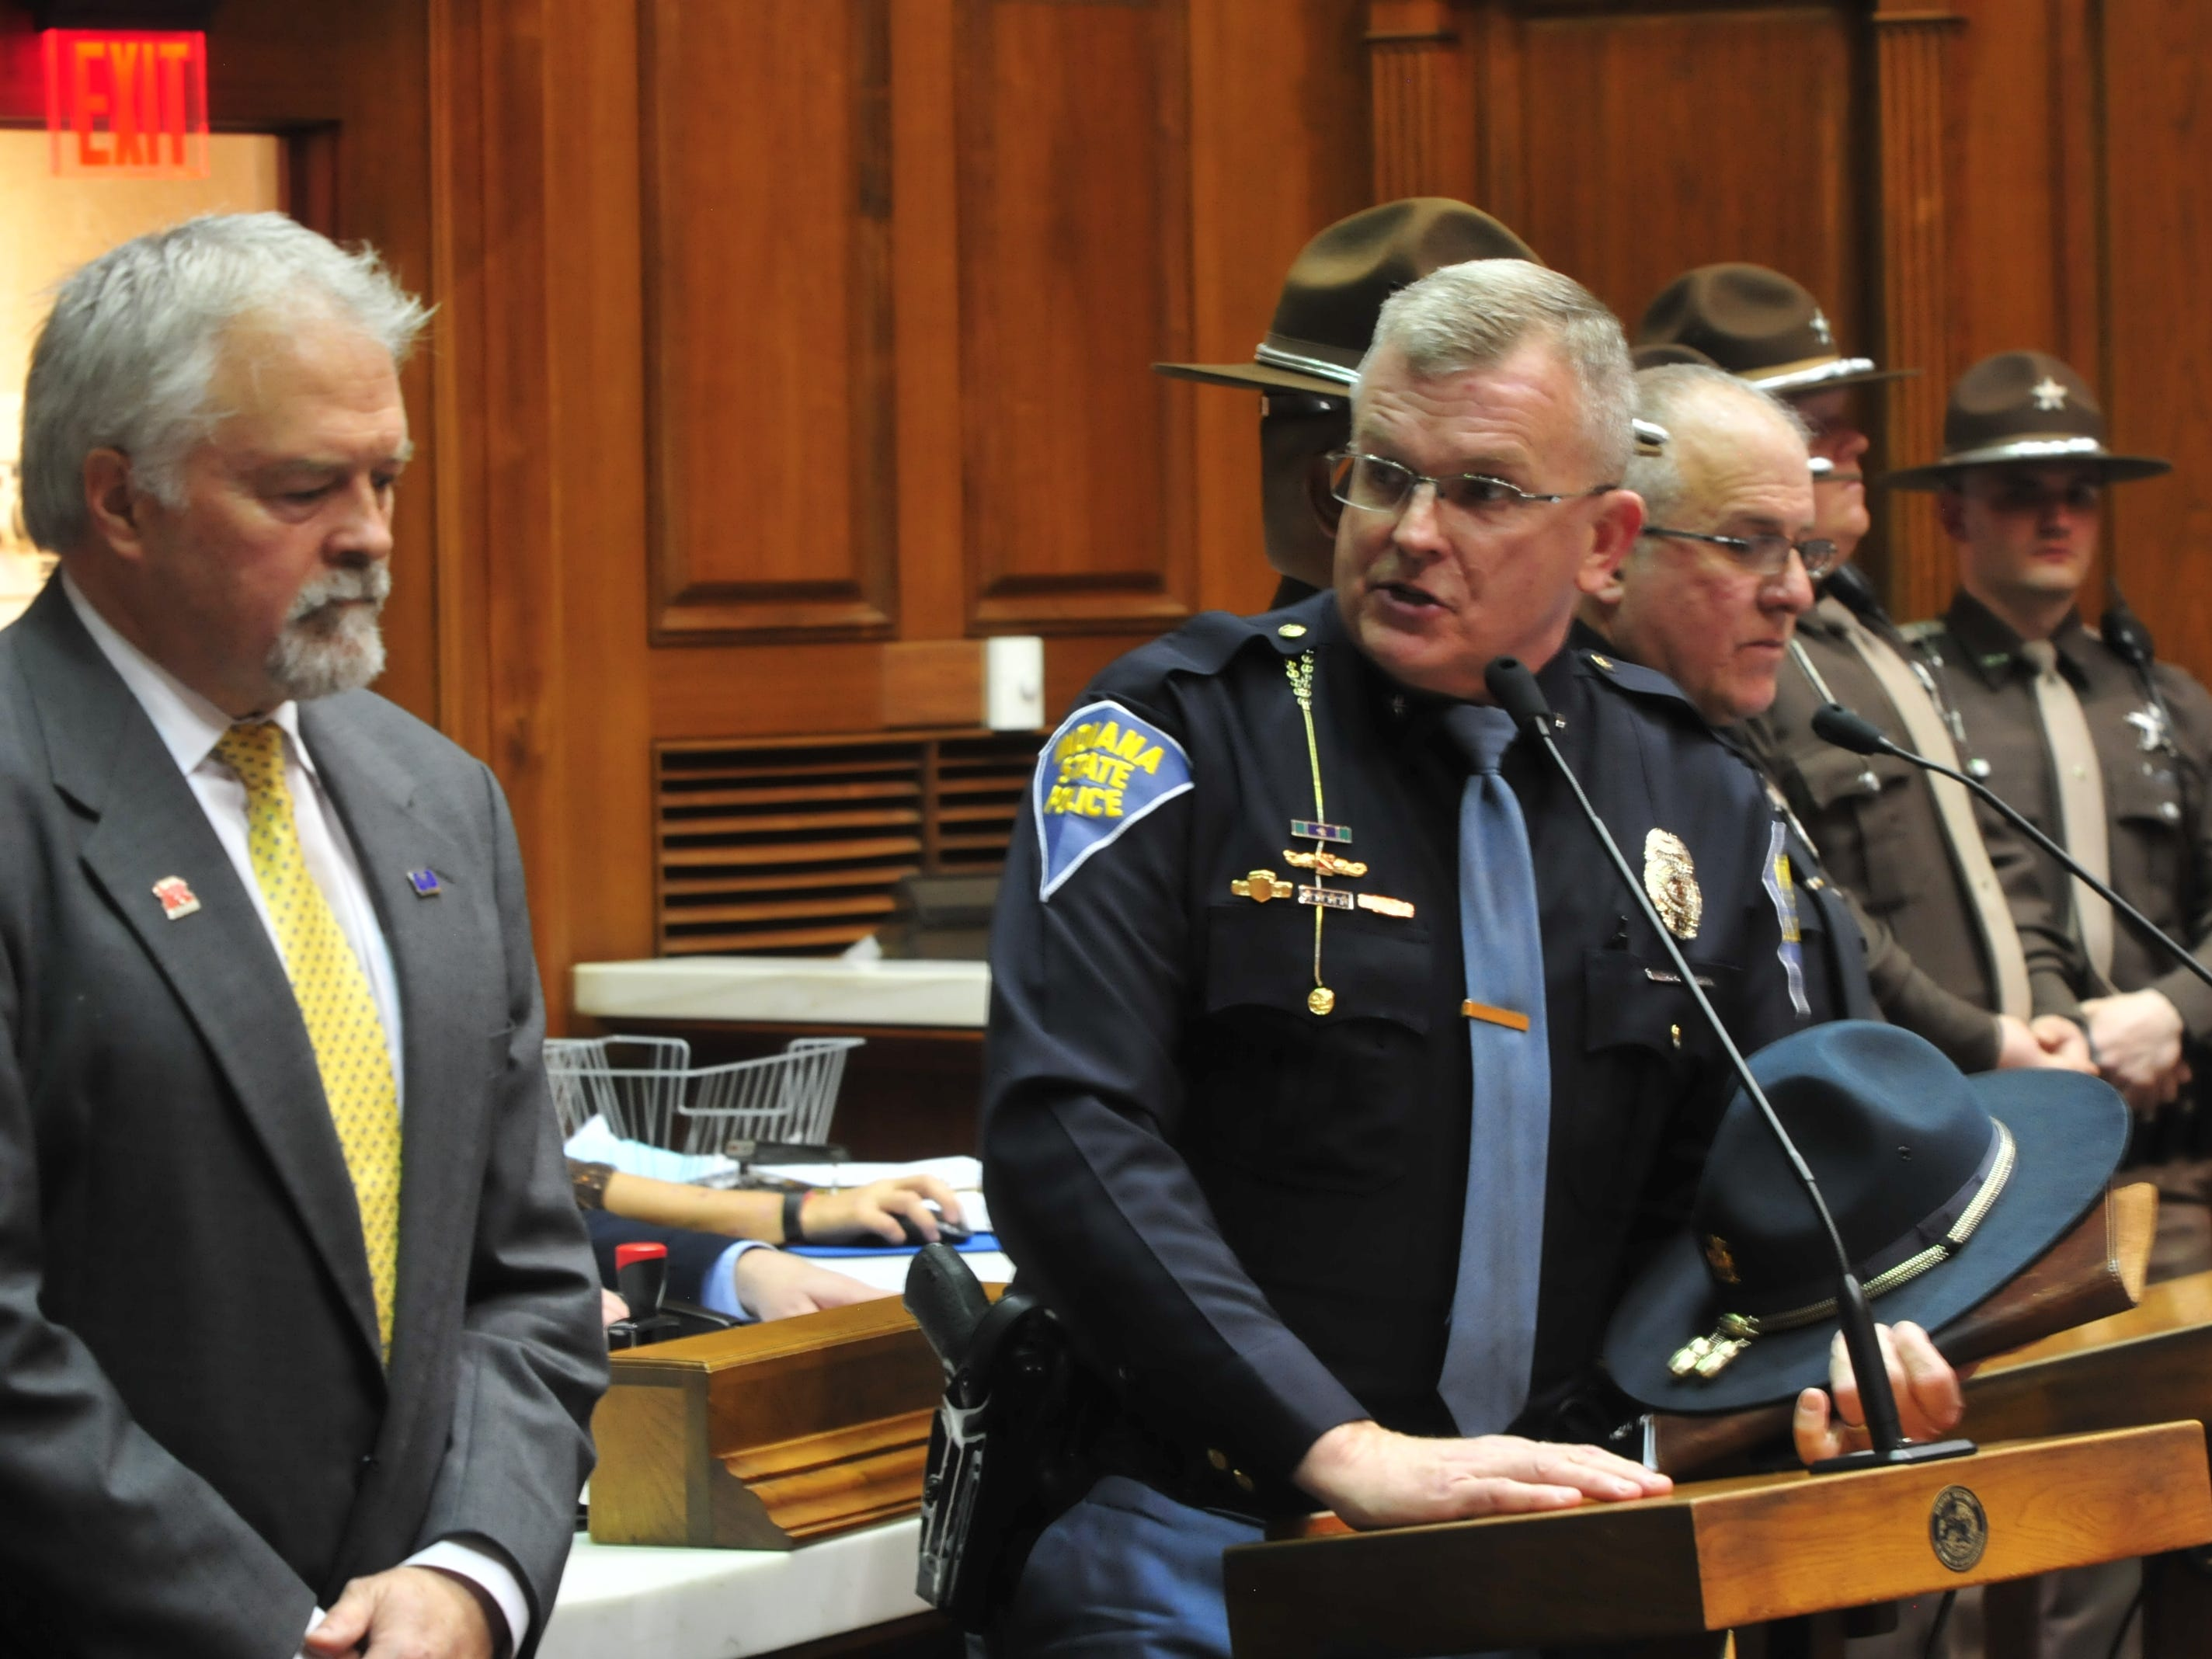 Indiana State Police Superintendent Doug Carter speaks during a ceremony inside the Indiana House chambers.